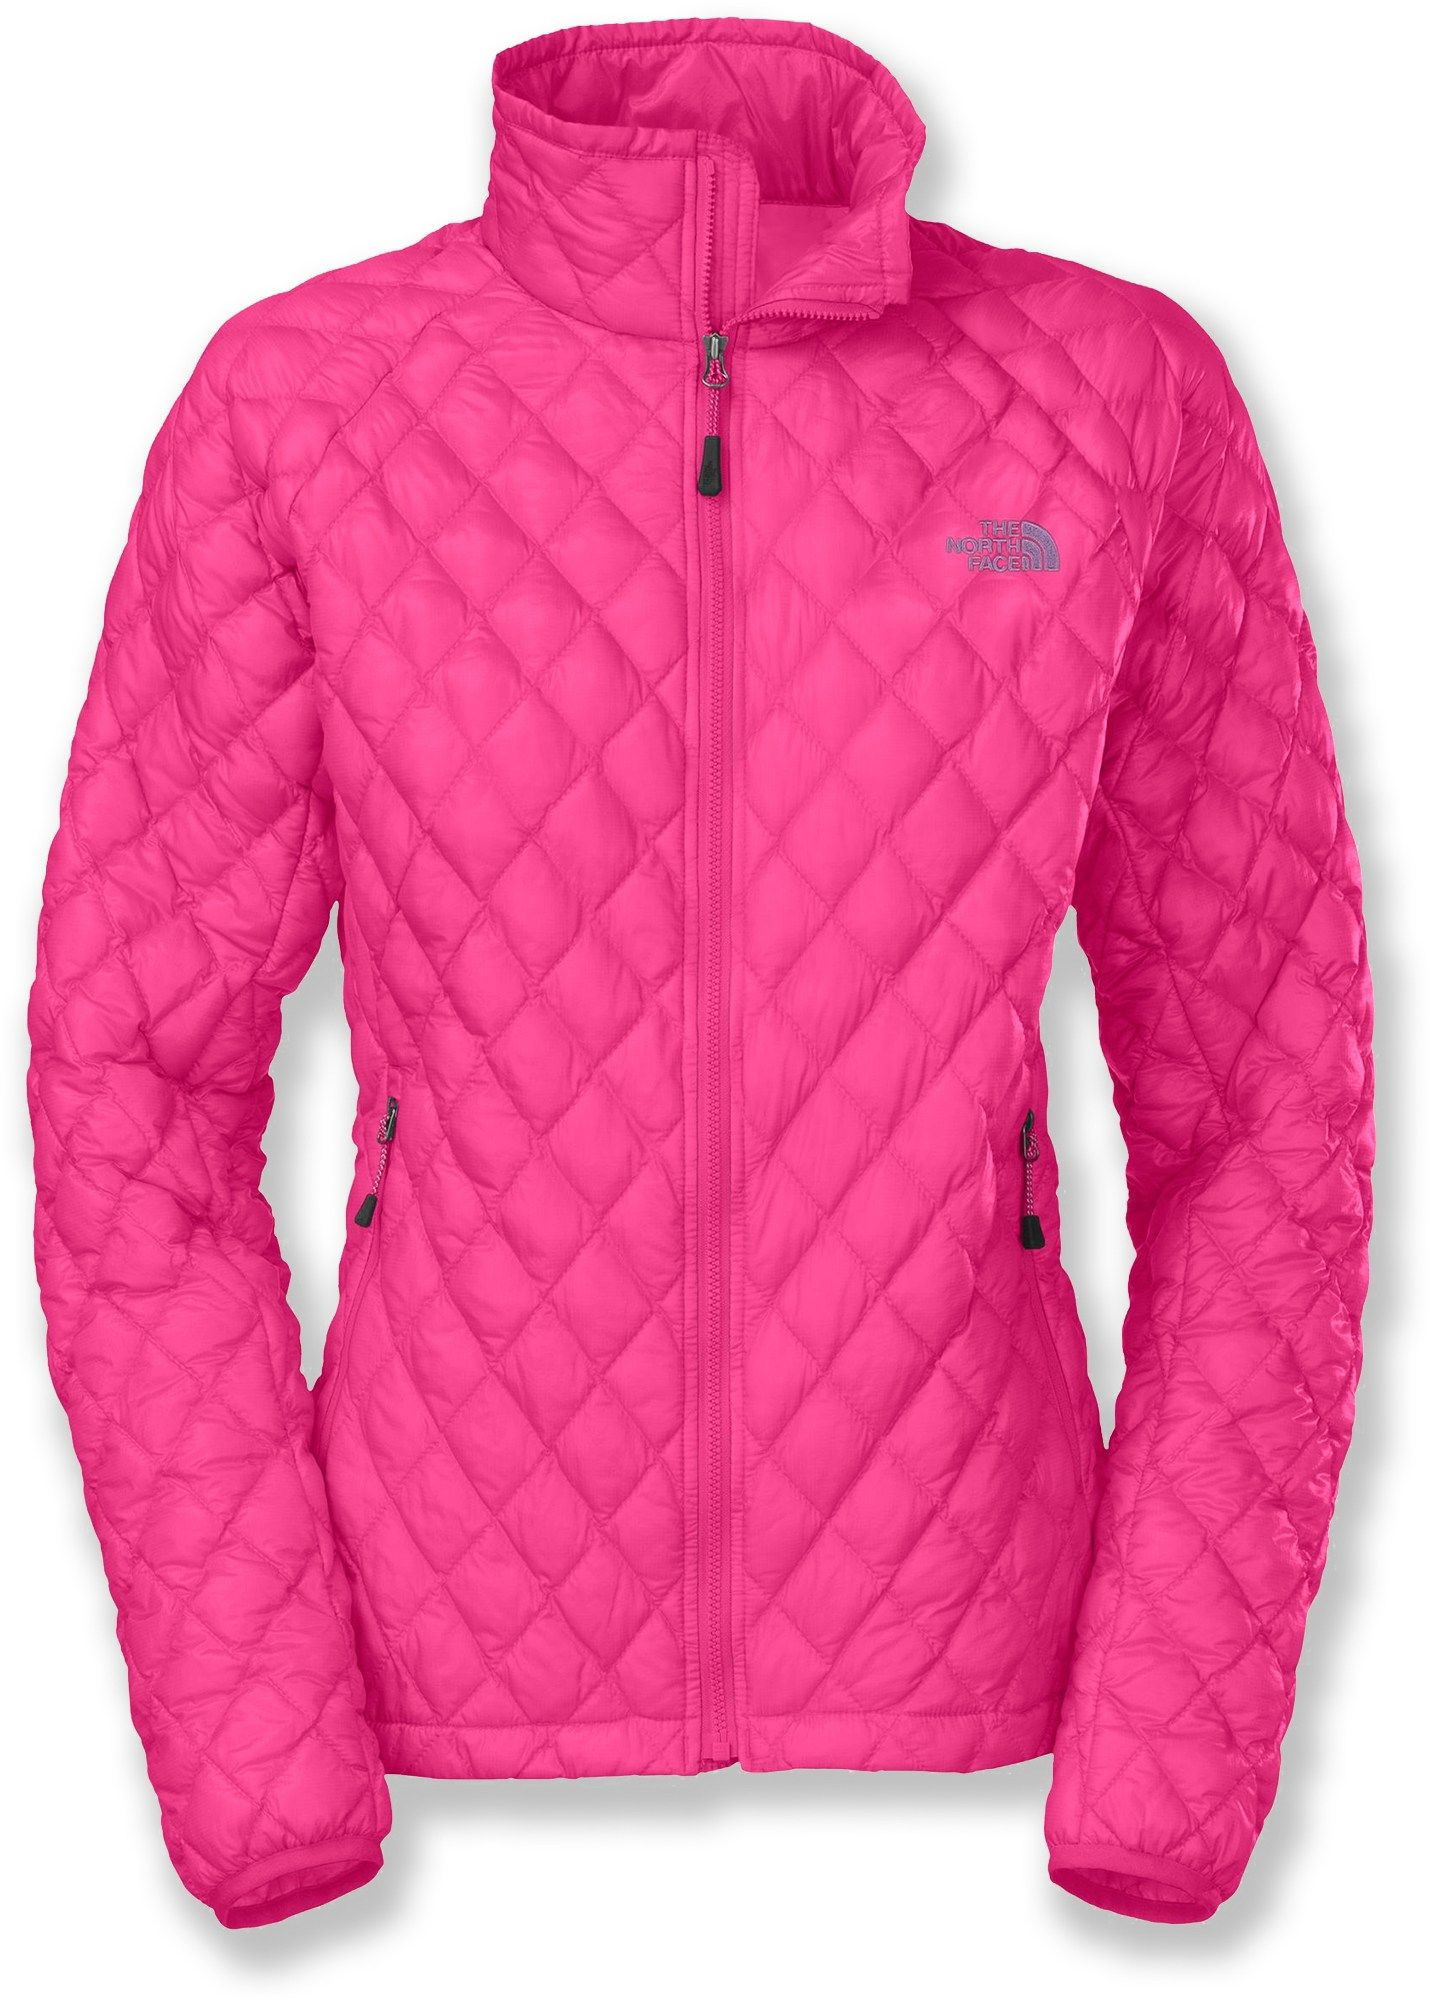 8146bcf20 ThermoBall Full-Zip Jacket - Women's | Brands/Products I Swear By ...